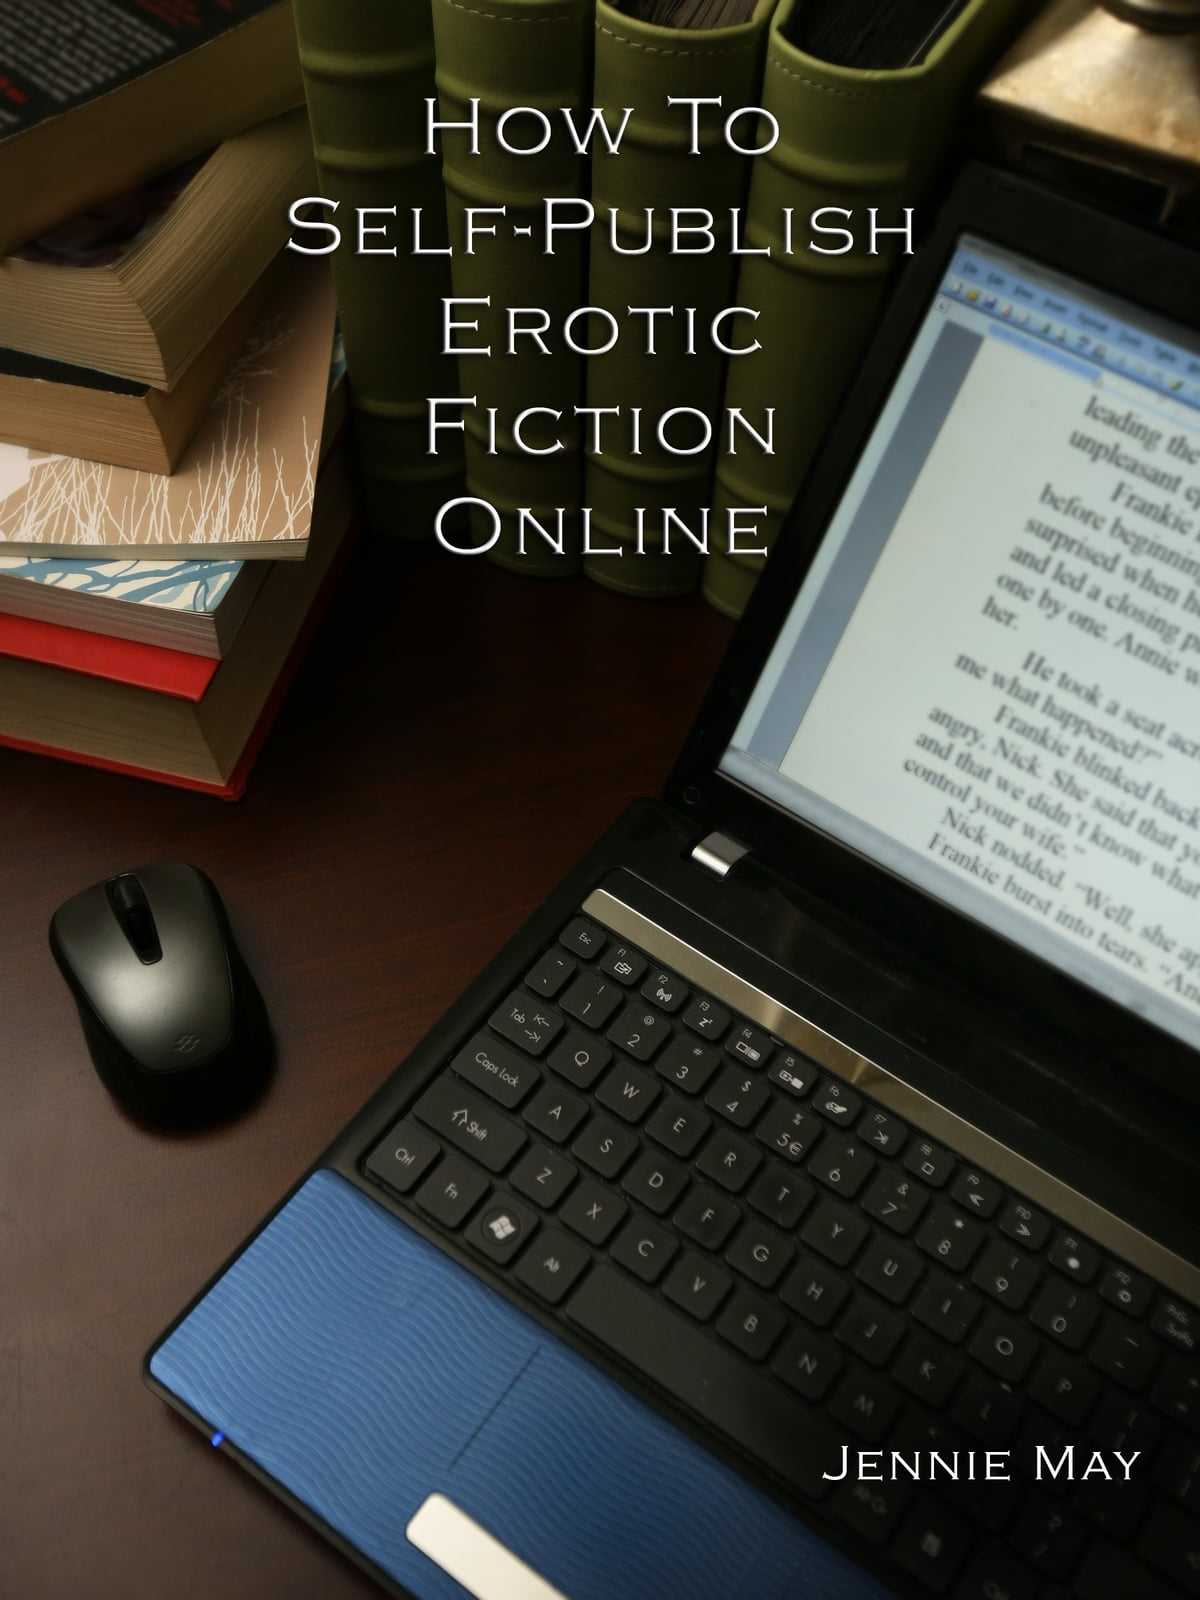 How To Self-Publish Erotic Fiction Online eBook by Jennie May | Rakuten Kobo